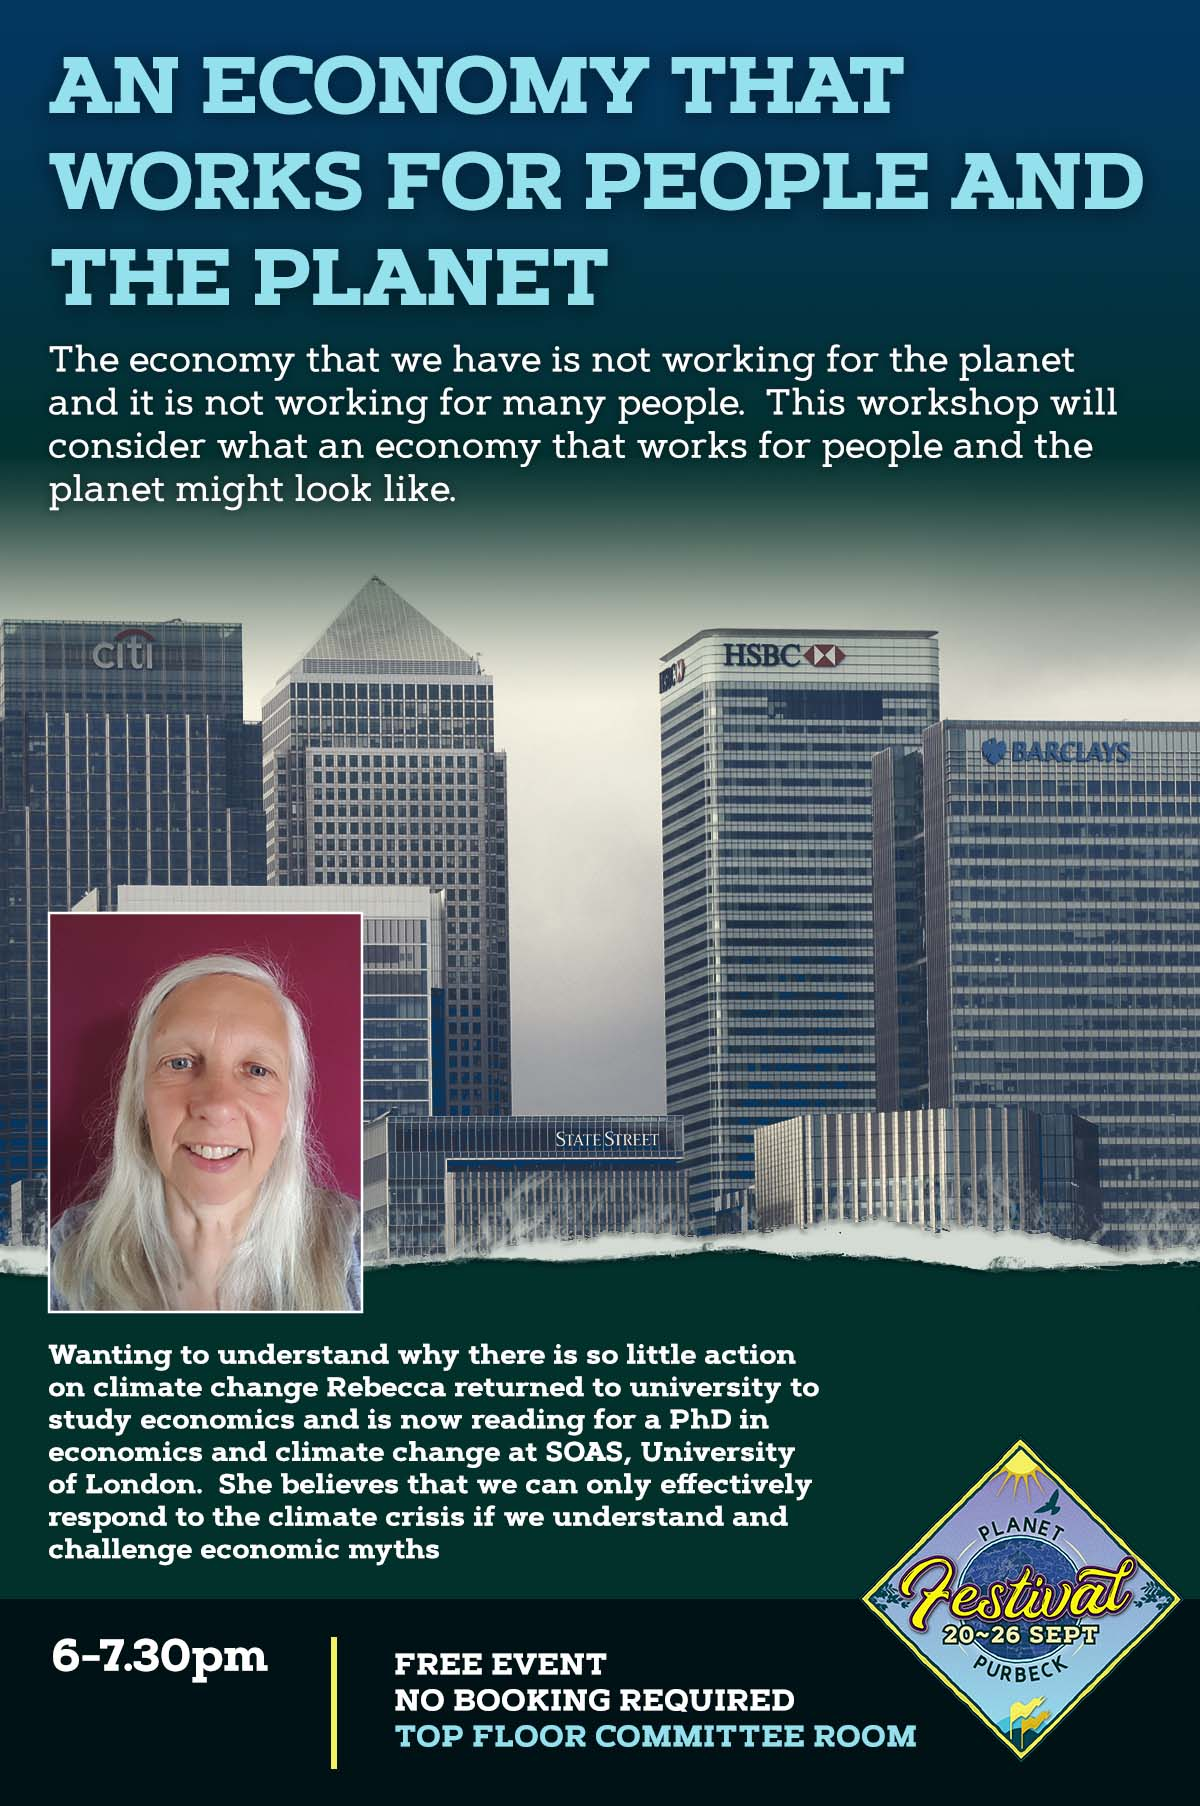 An economy that works for people and the planet Planet Purbeck Event